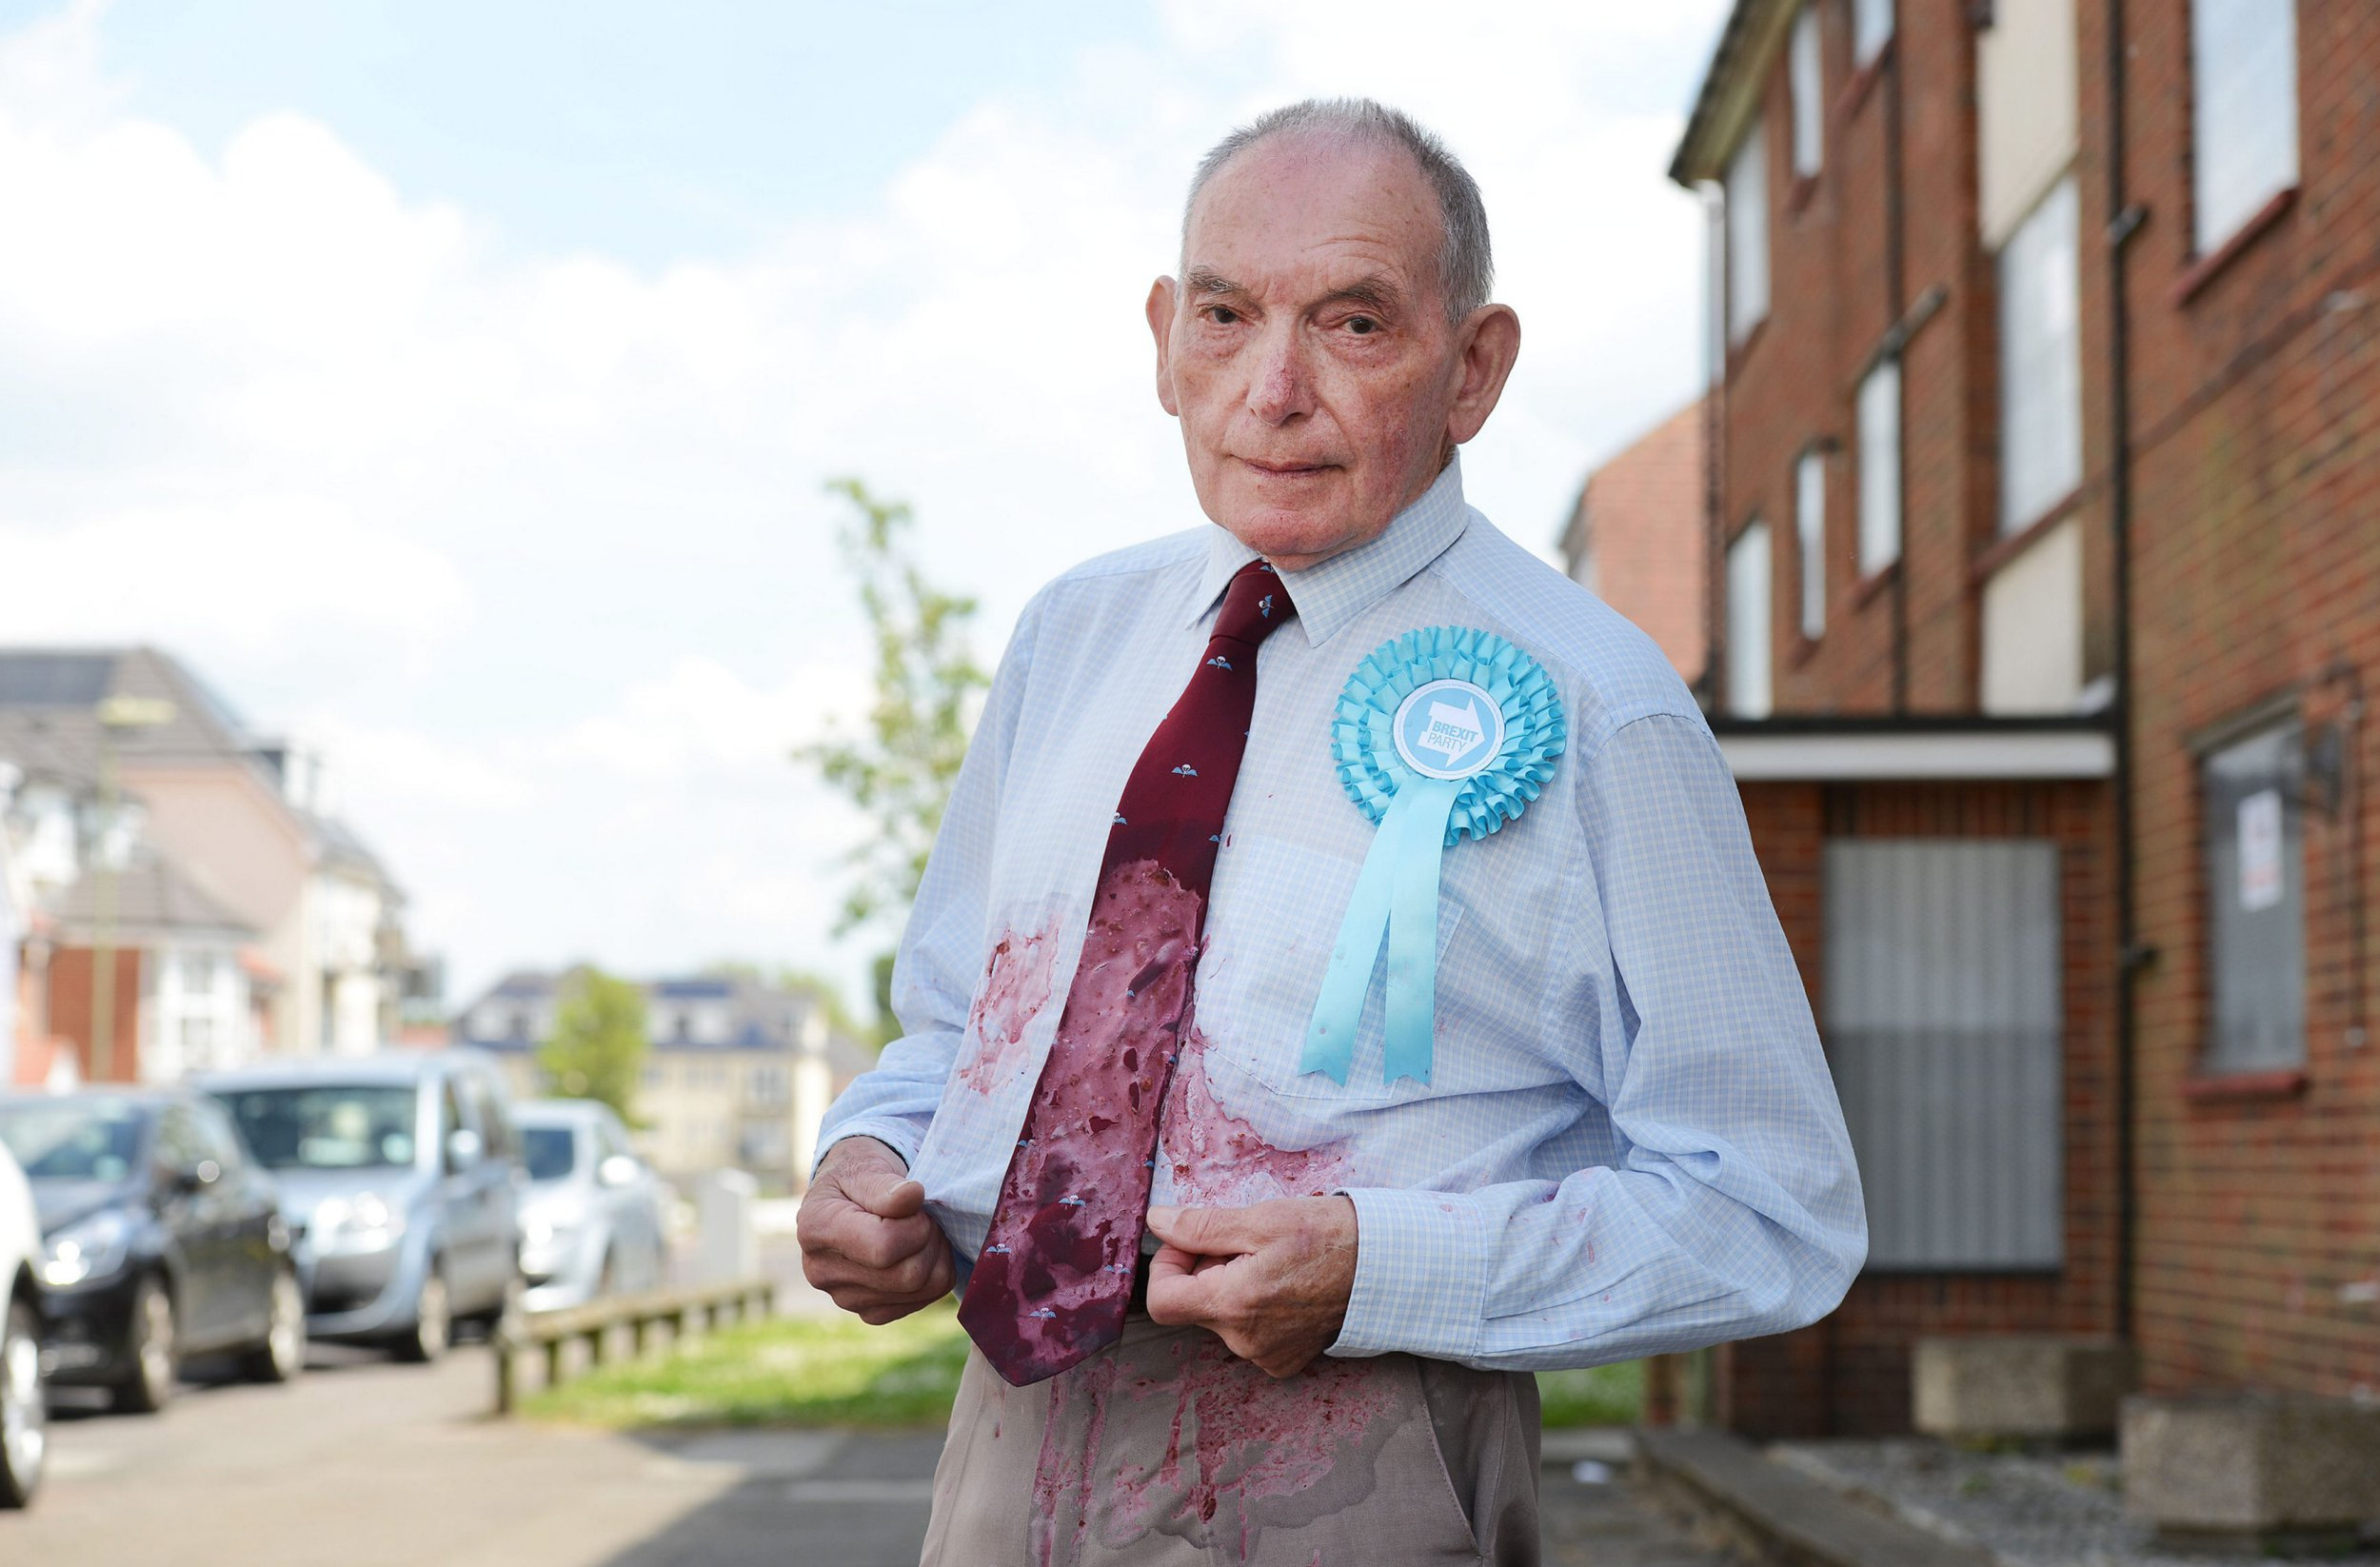 Brexit Party pensioner hit with milkshake outside polling station